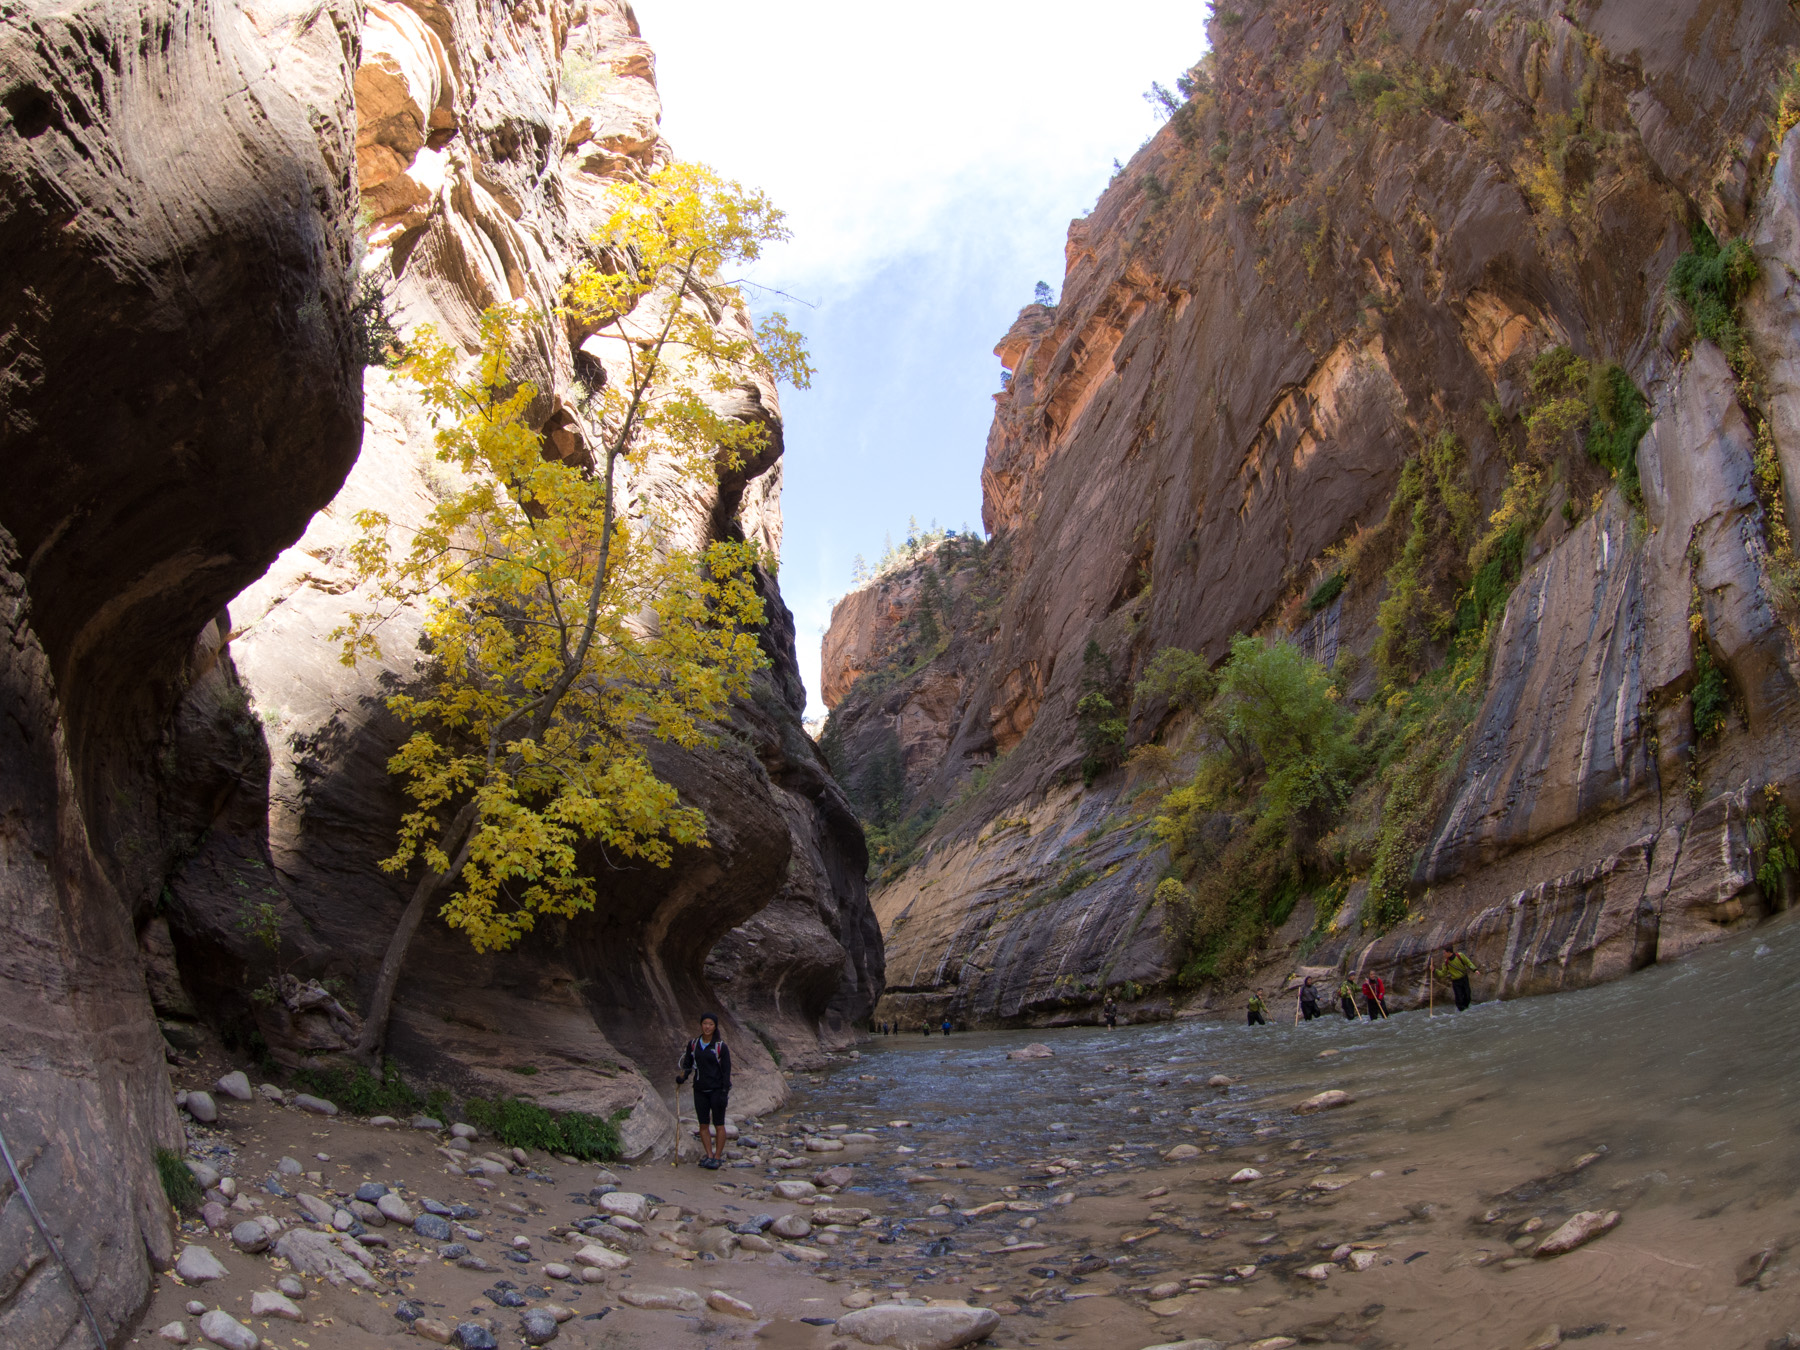 The autumn colors made the narrows look completely different than last year when we went in June